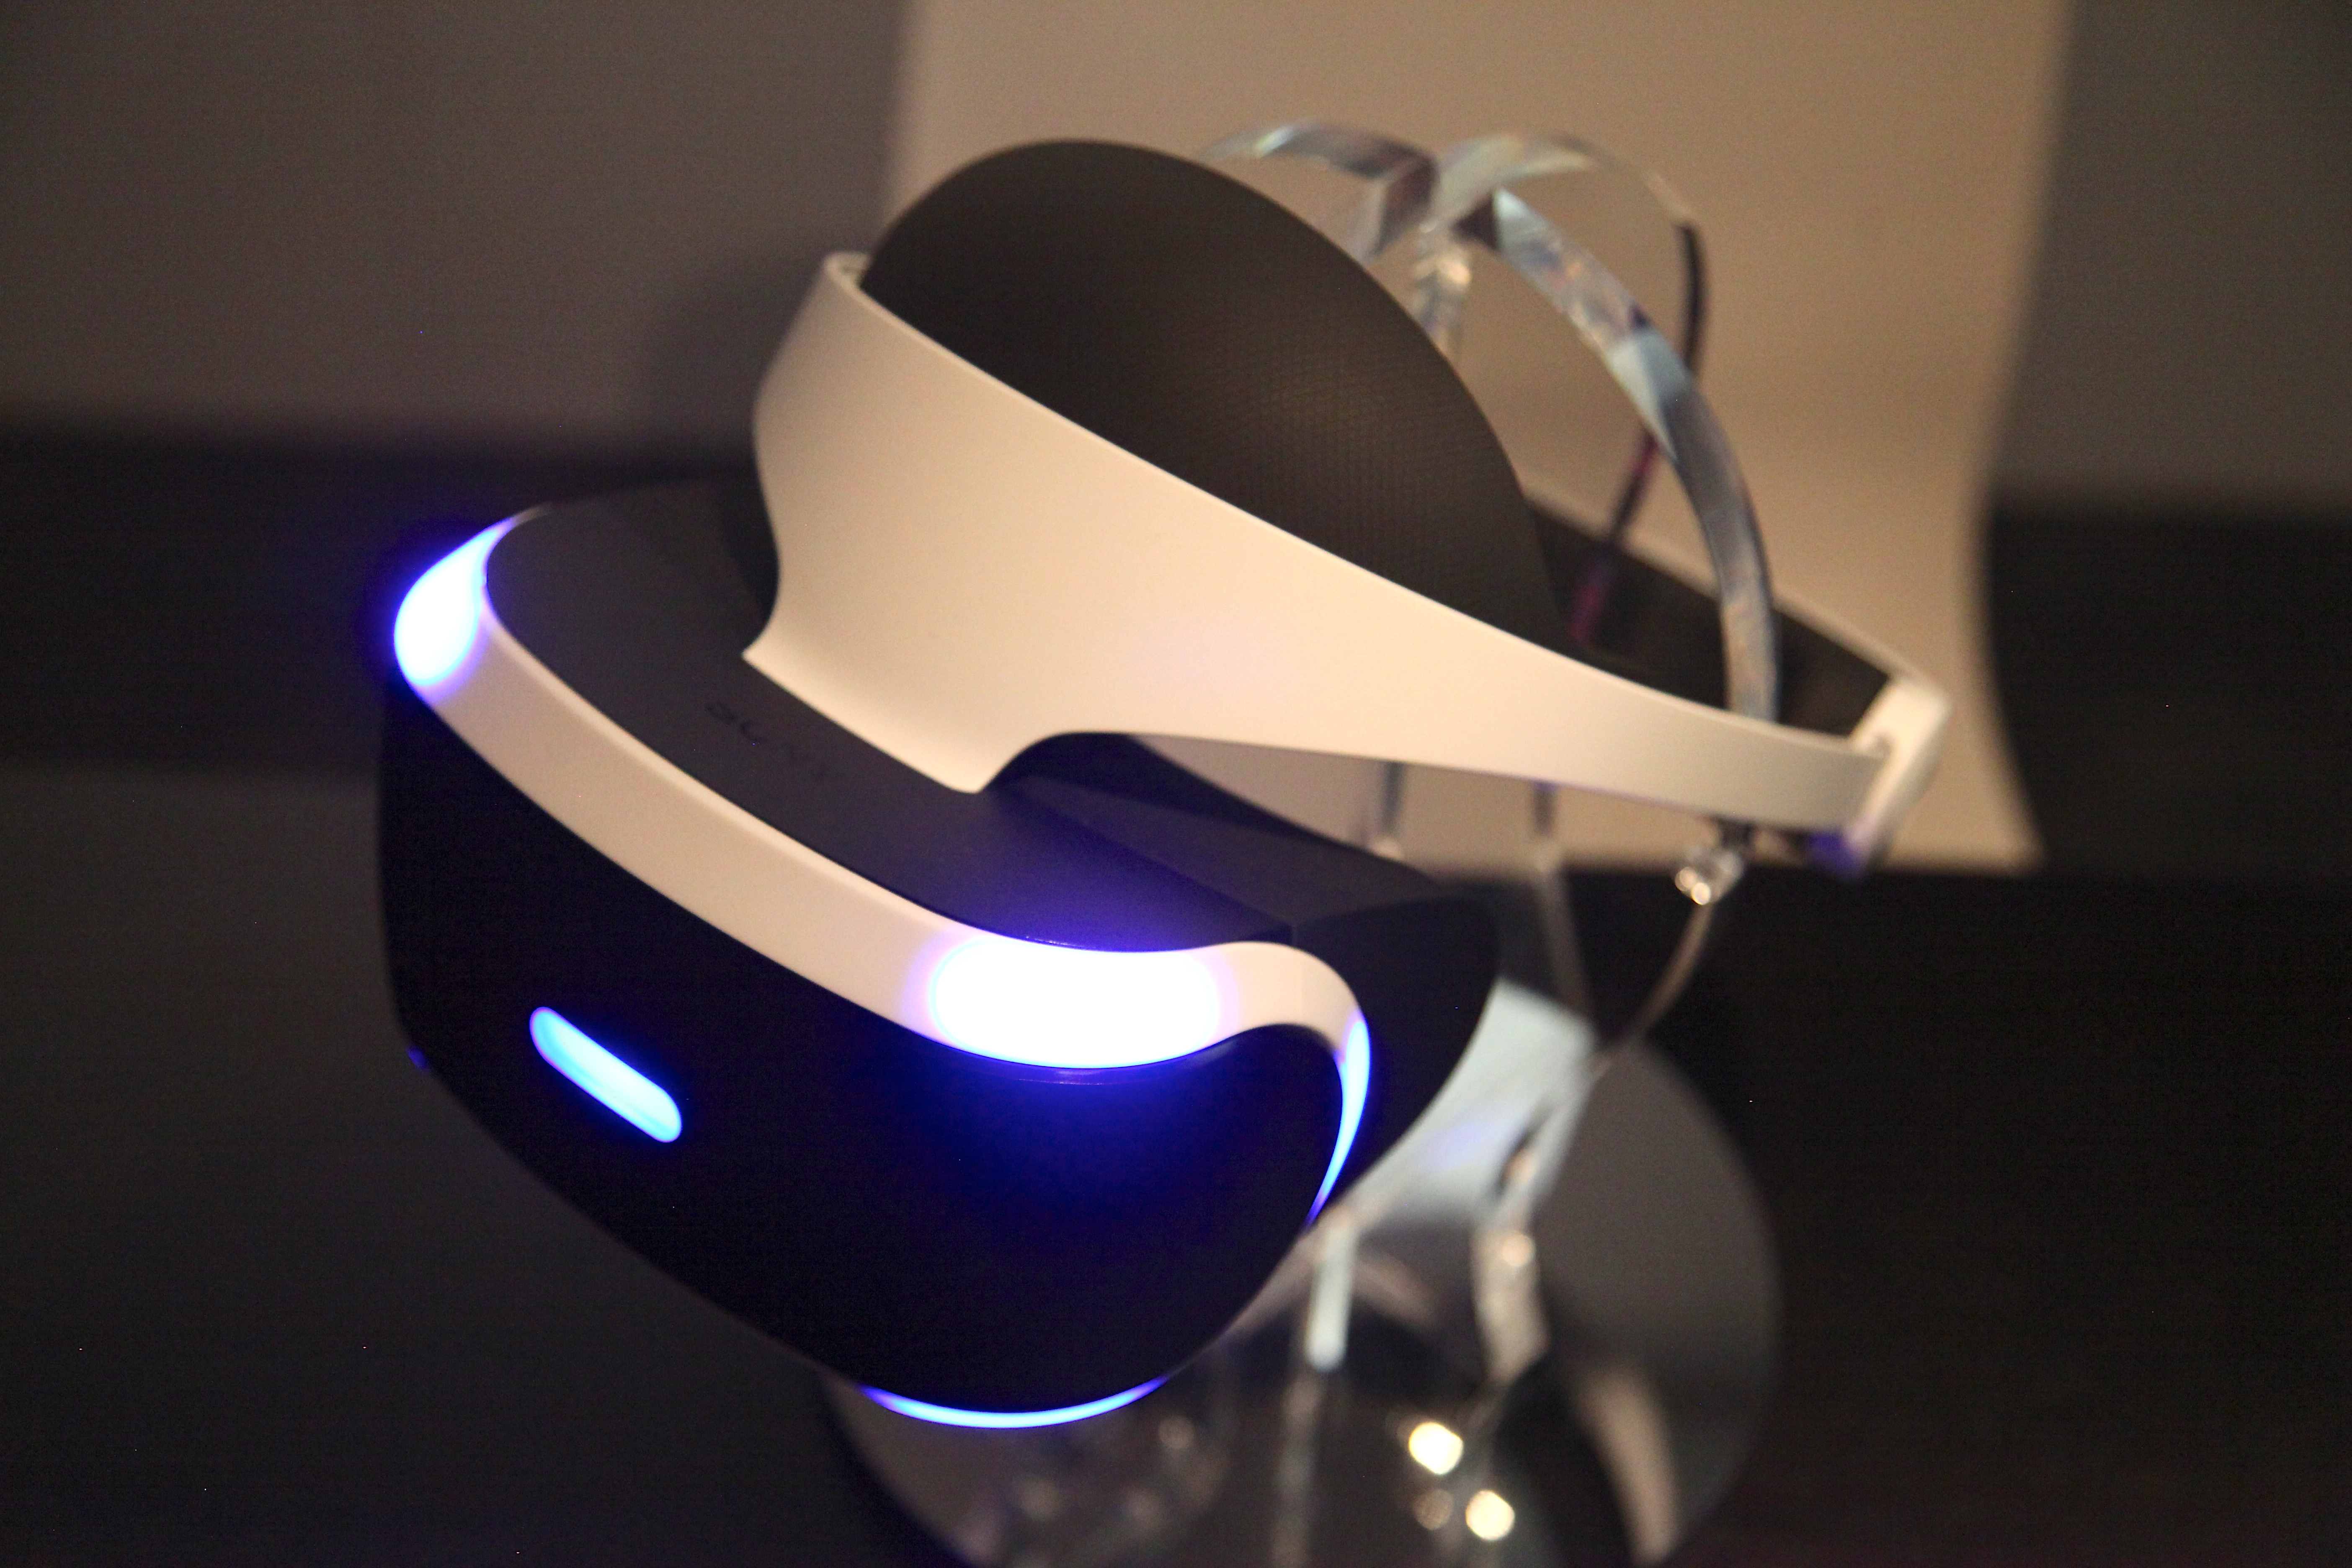 The Project Morpheus virtual reality headset is much more comfortable to wear than its rivals.